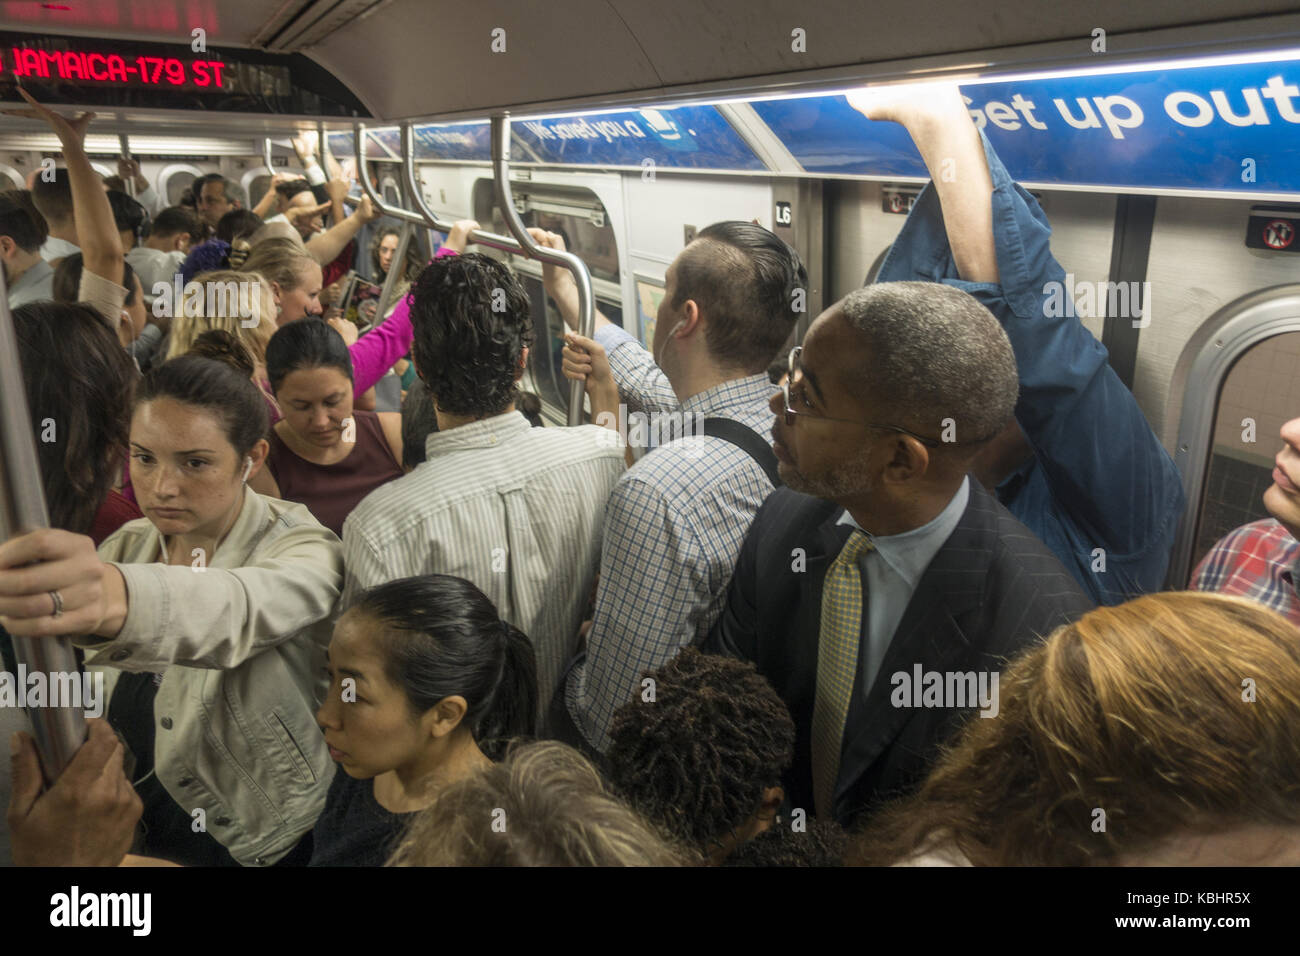 Very crowded F train on its way from Brooklyn to Manhattan during the morning rush hour in New York City. - Stock Image